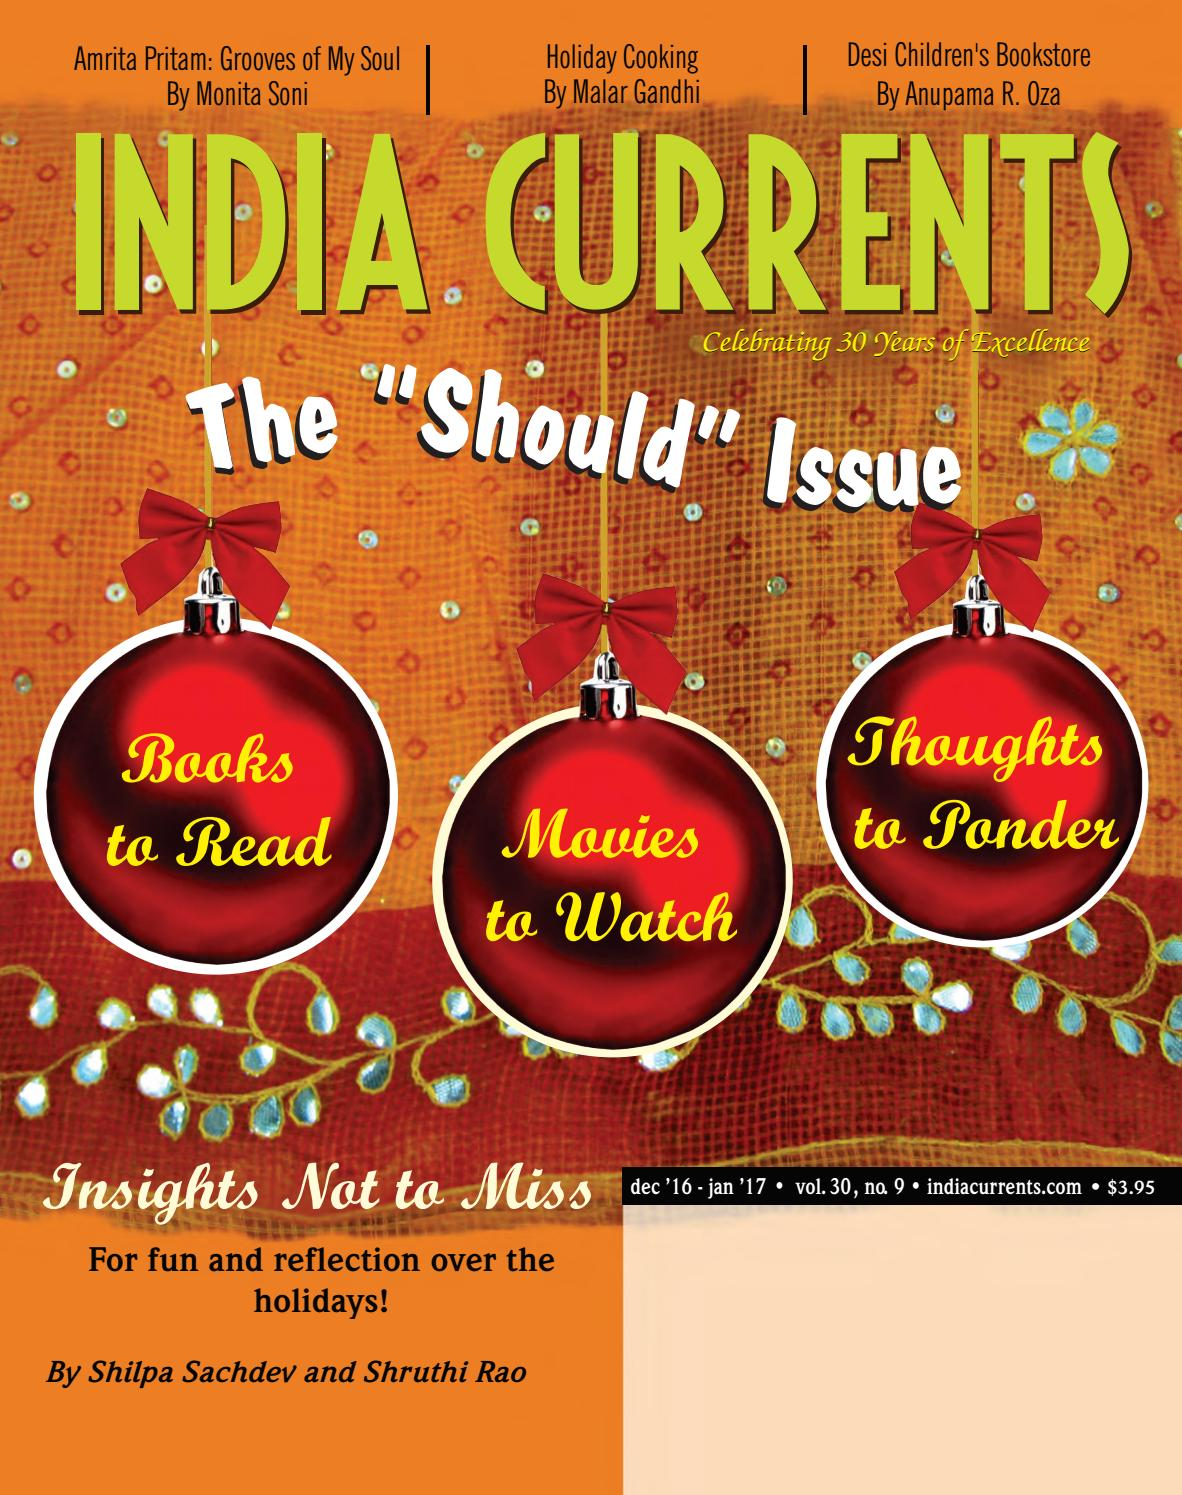 India Currents Dec '16 - Jan '17 edition by India Currents